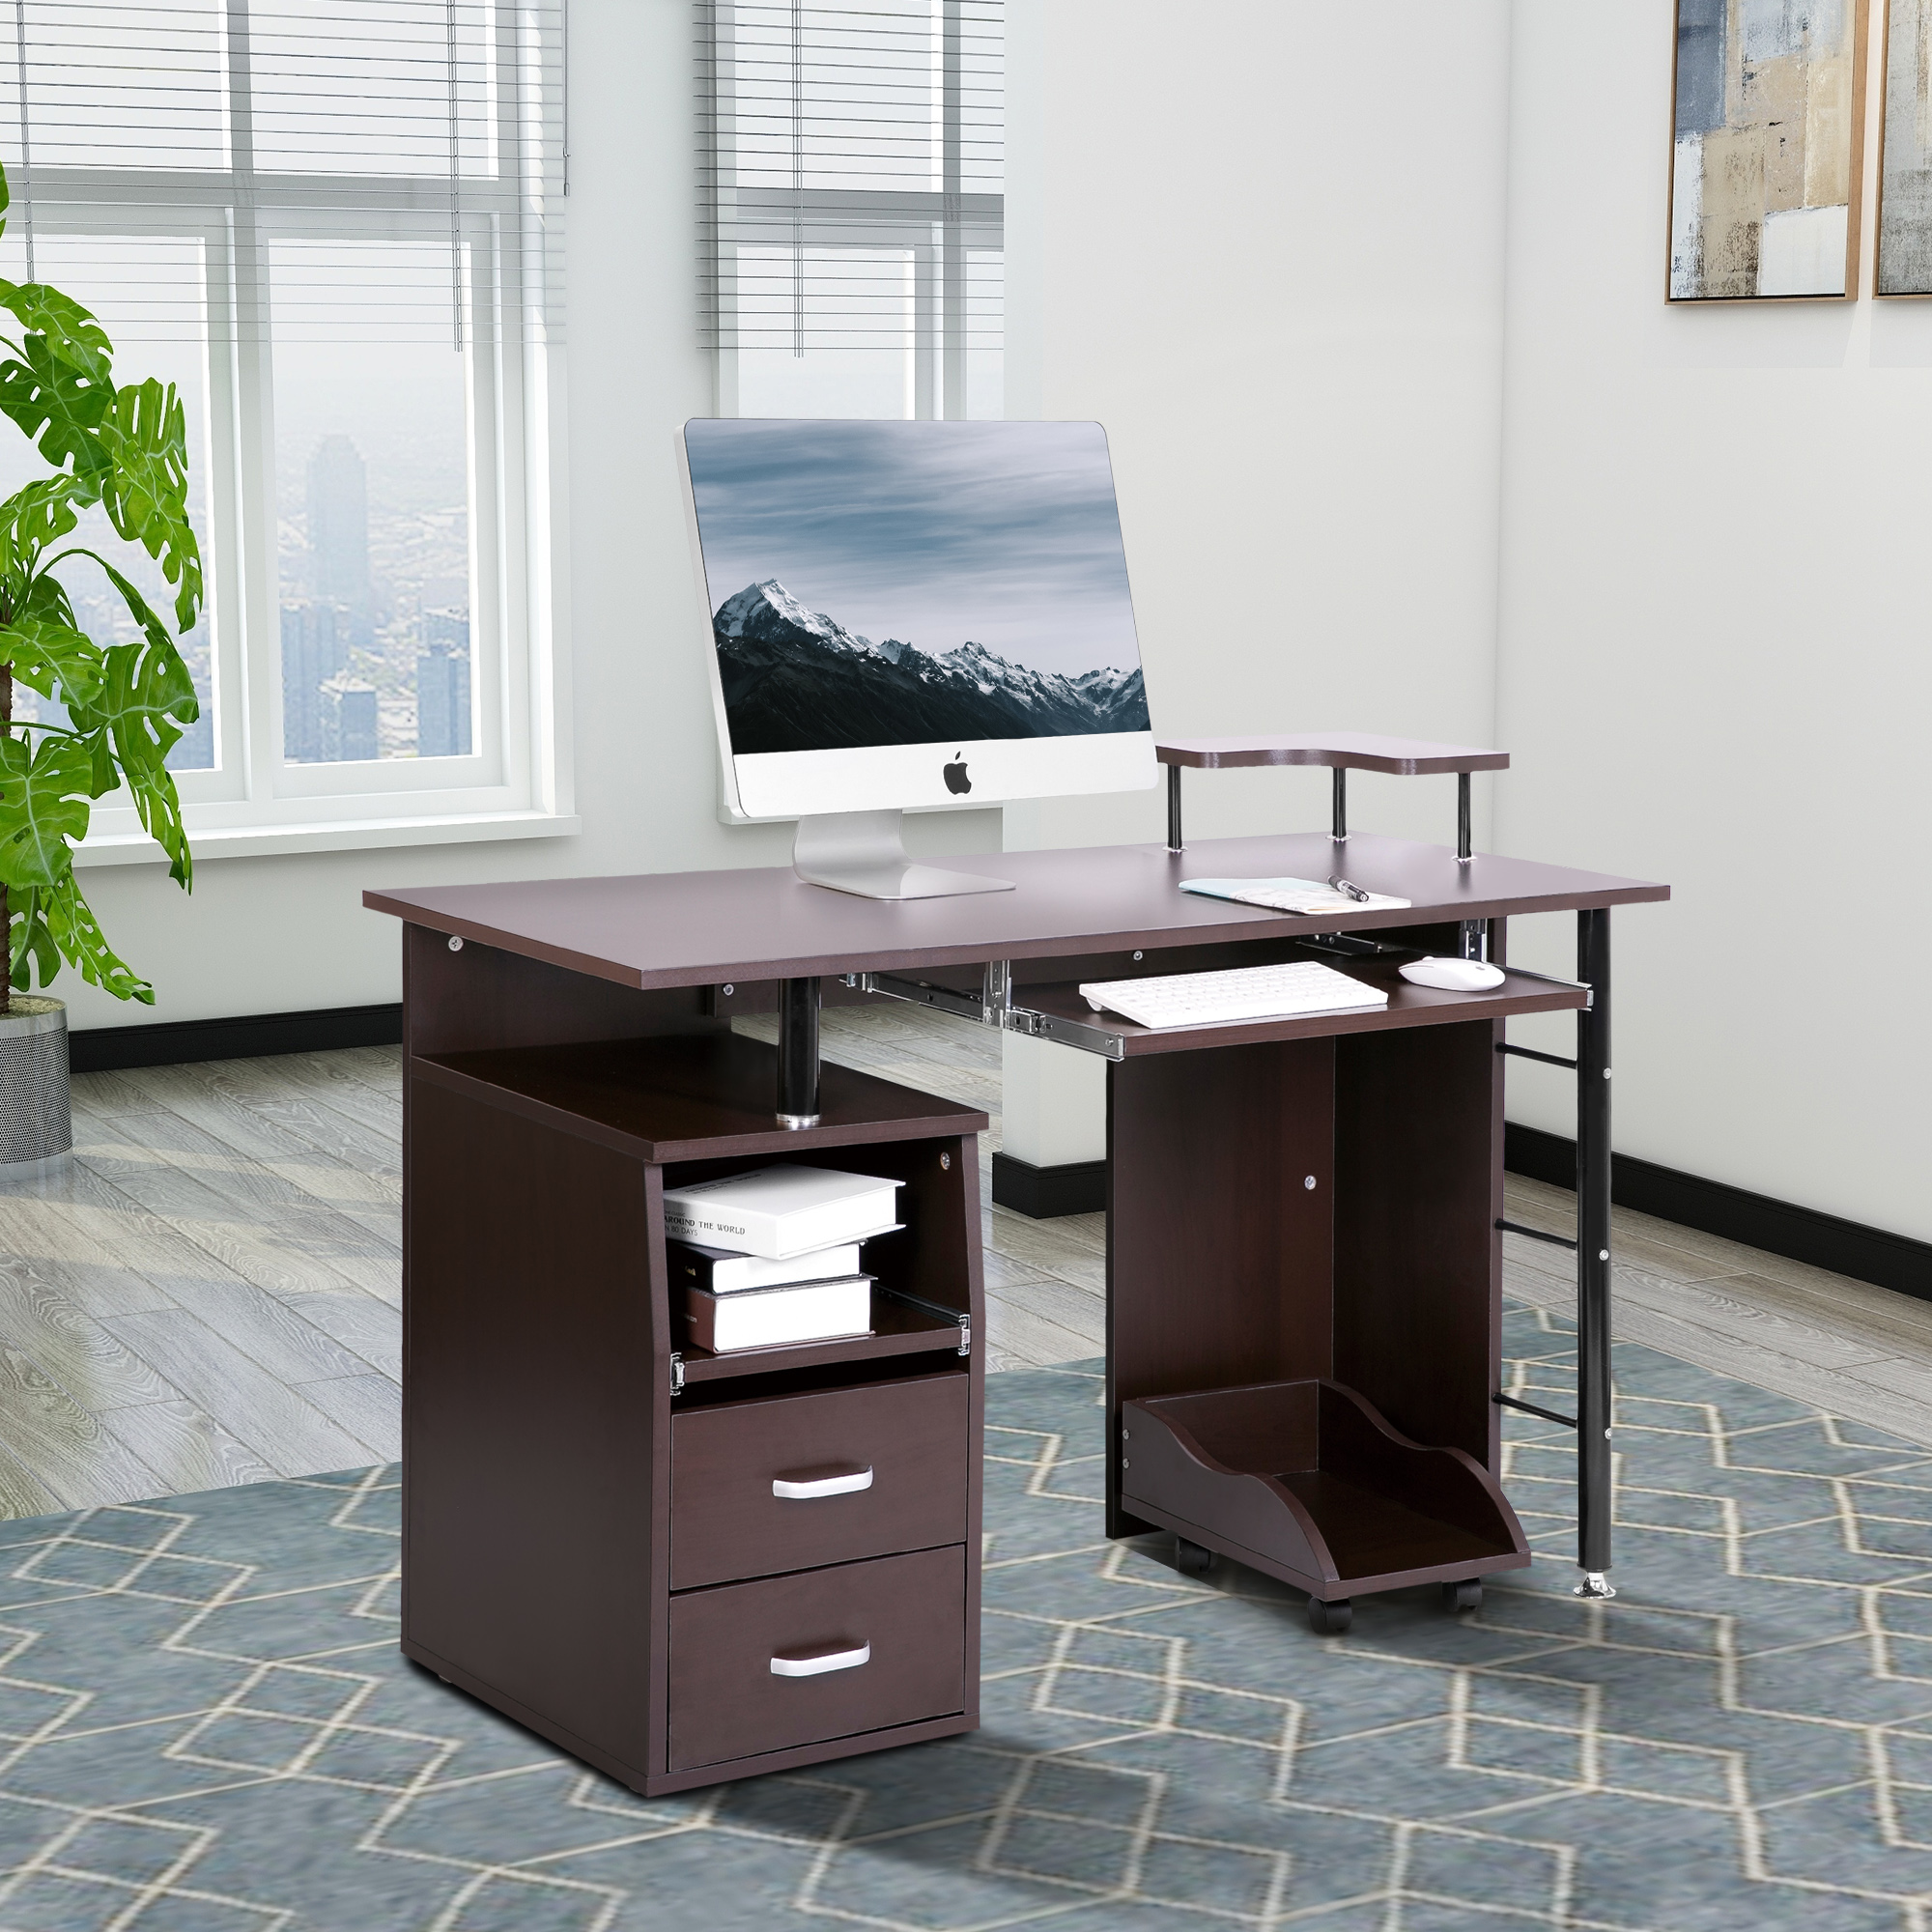 ModernLuxe Computer Desk With Keyboard Tray Slide Out Cabinet Two Drawers  Mobile CPU Storage And